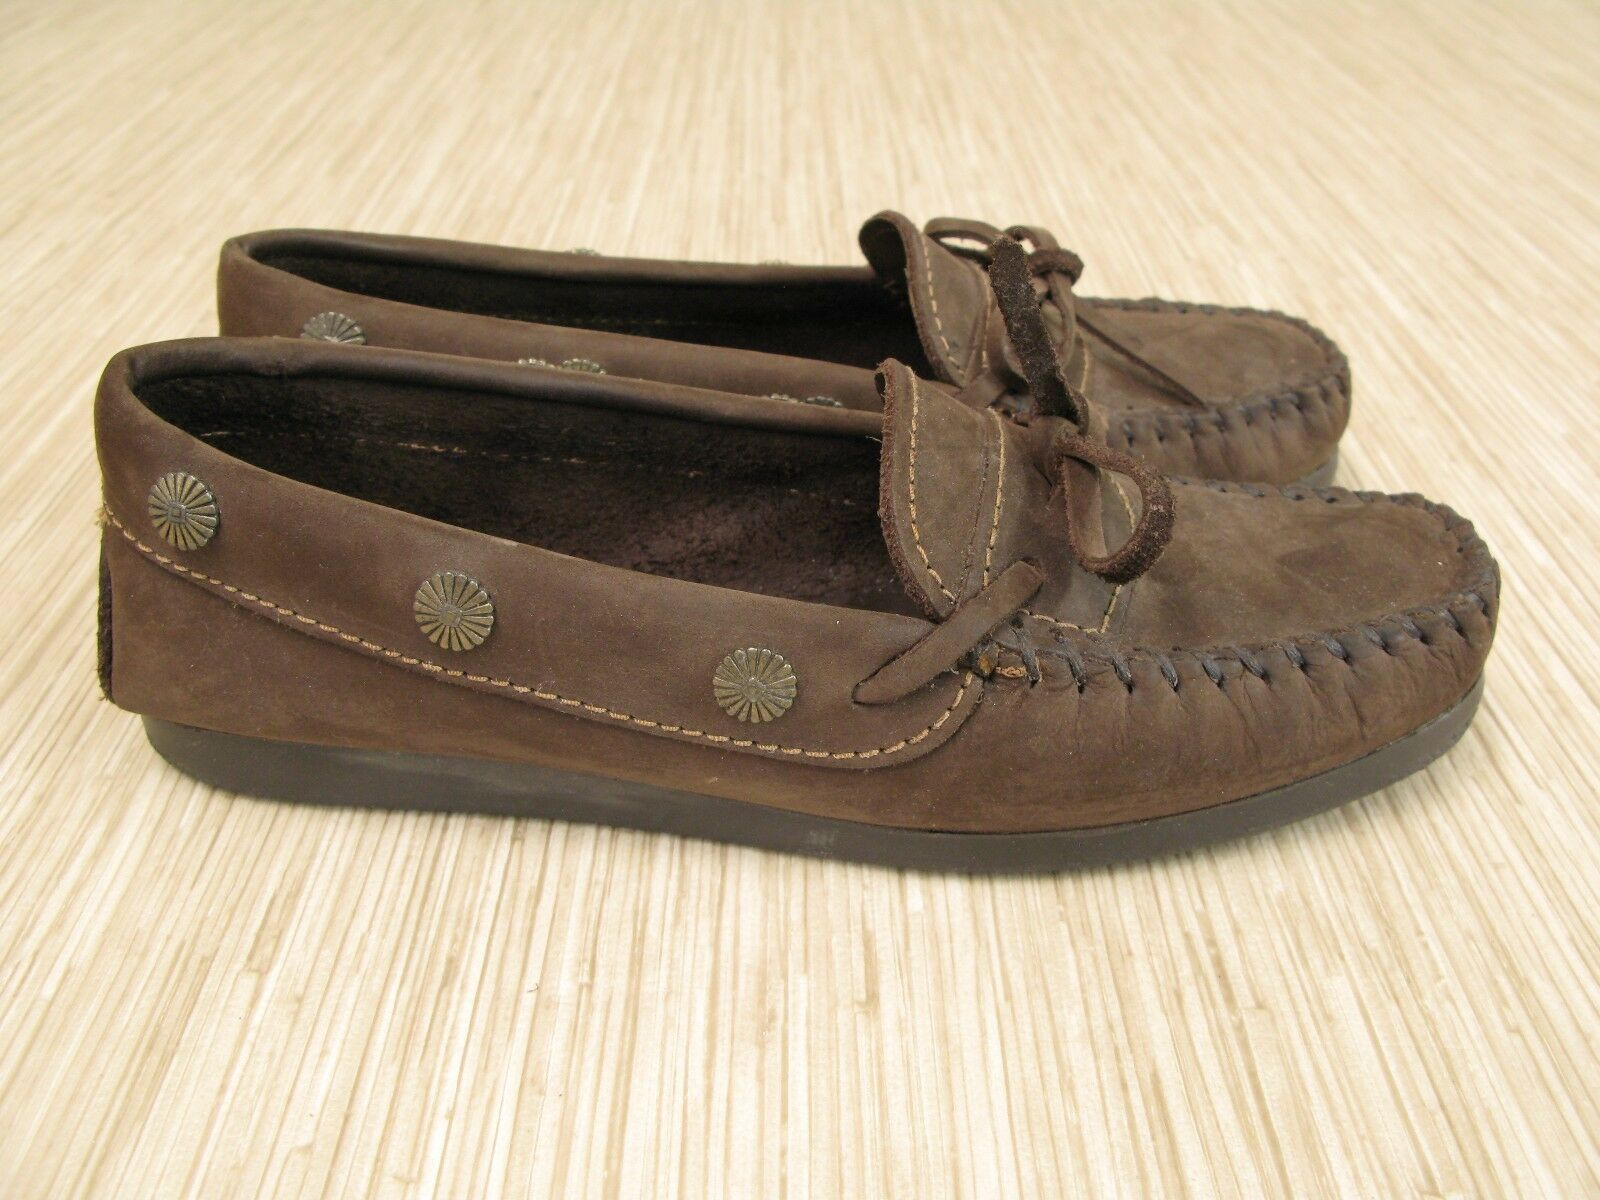 Minnetonka Moccasins Dark Brown Leather shoes Women's Size US 7 Casual Slip On